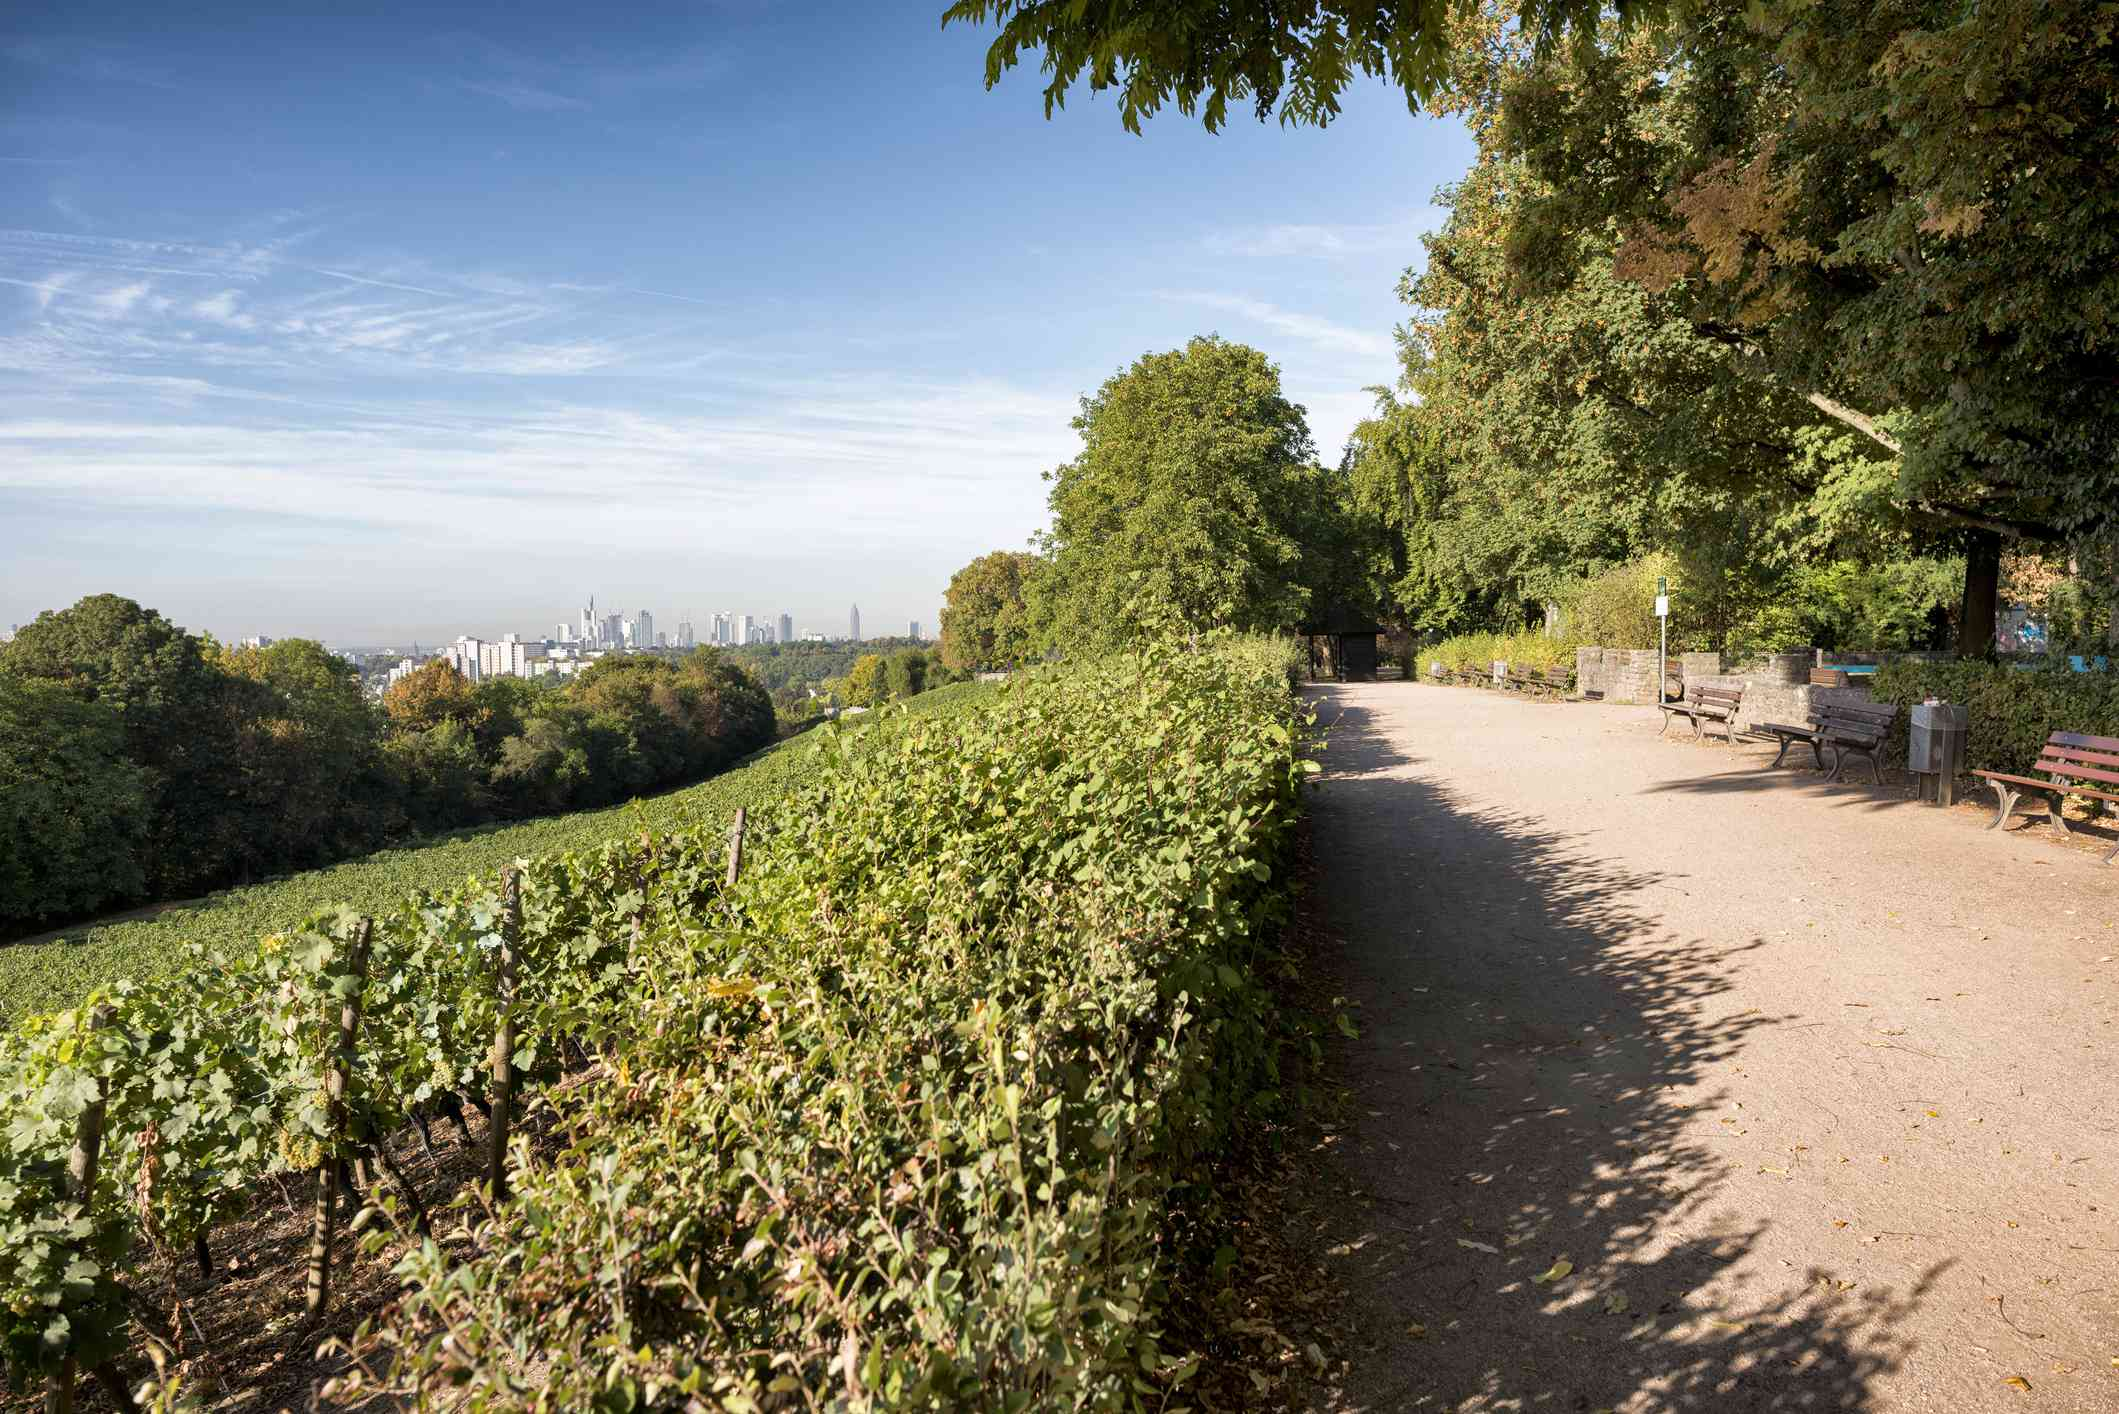 image with grapevines and a distant city skyline to the left and a wide park path to the right